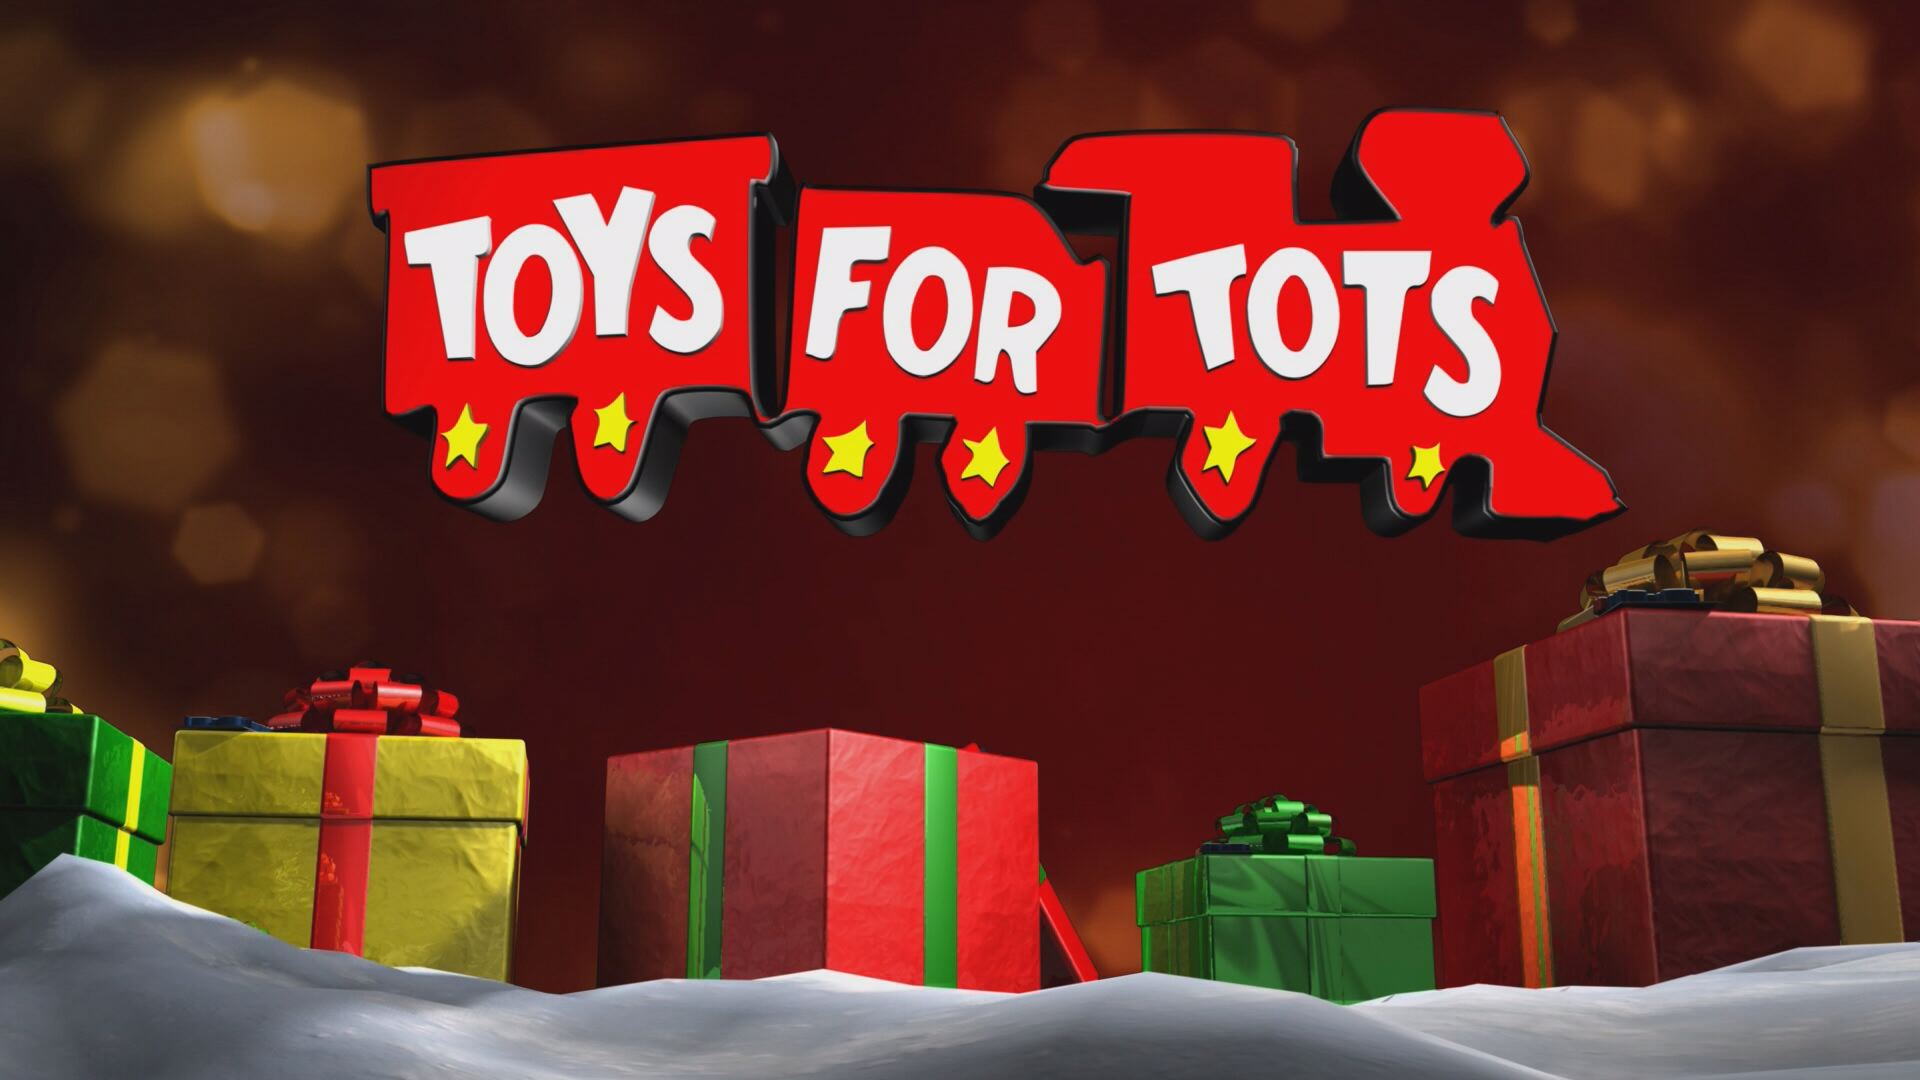 Toys For Tots Logo Flyer : Marines gearing up for toys tots kare